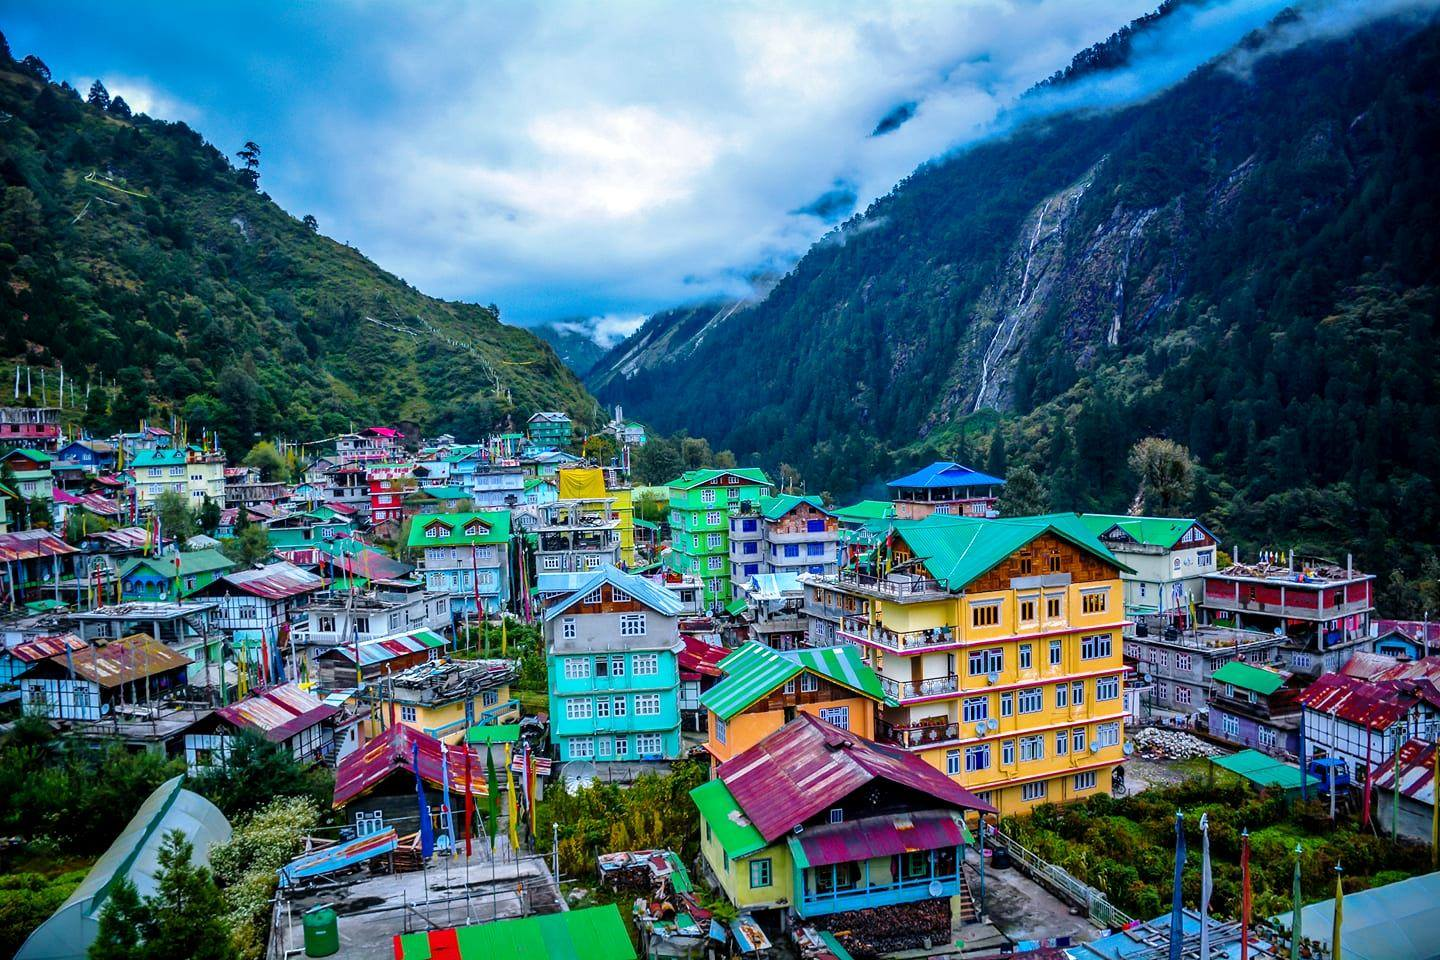 Smashing Sikkim Honeymoon Packages To Get Couples Enjoy Romantic Vacations